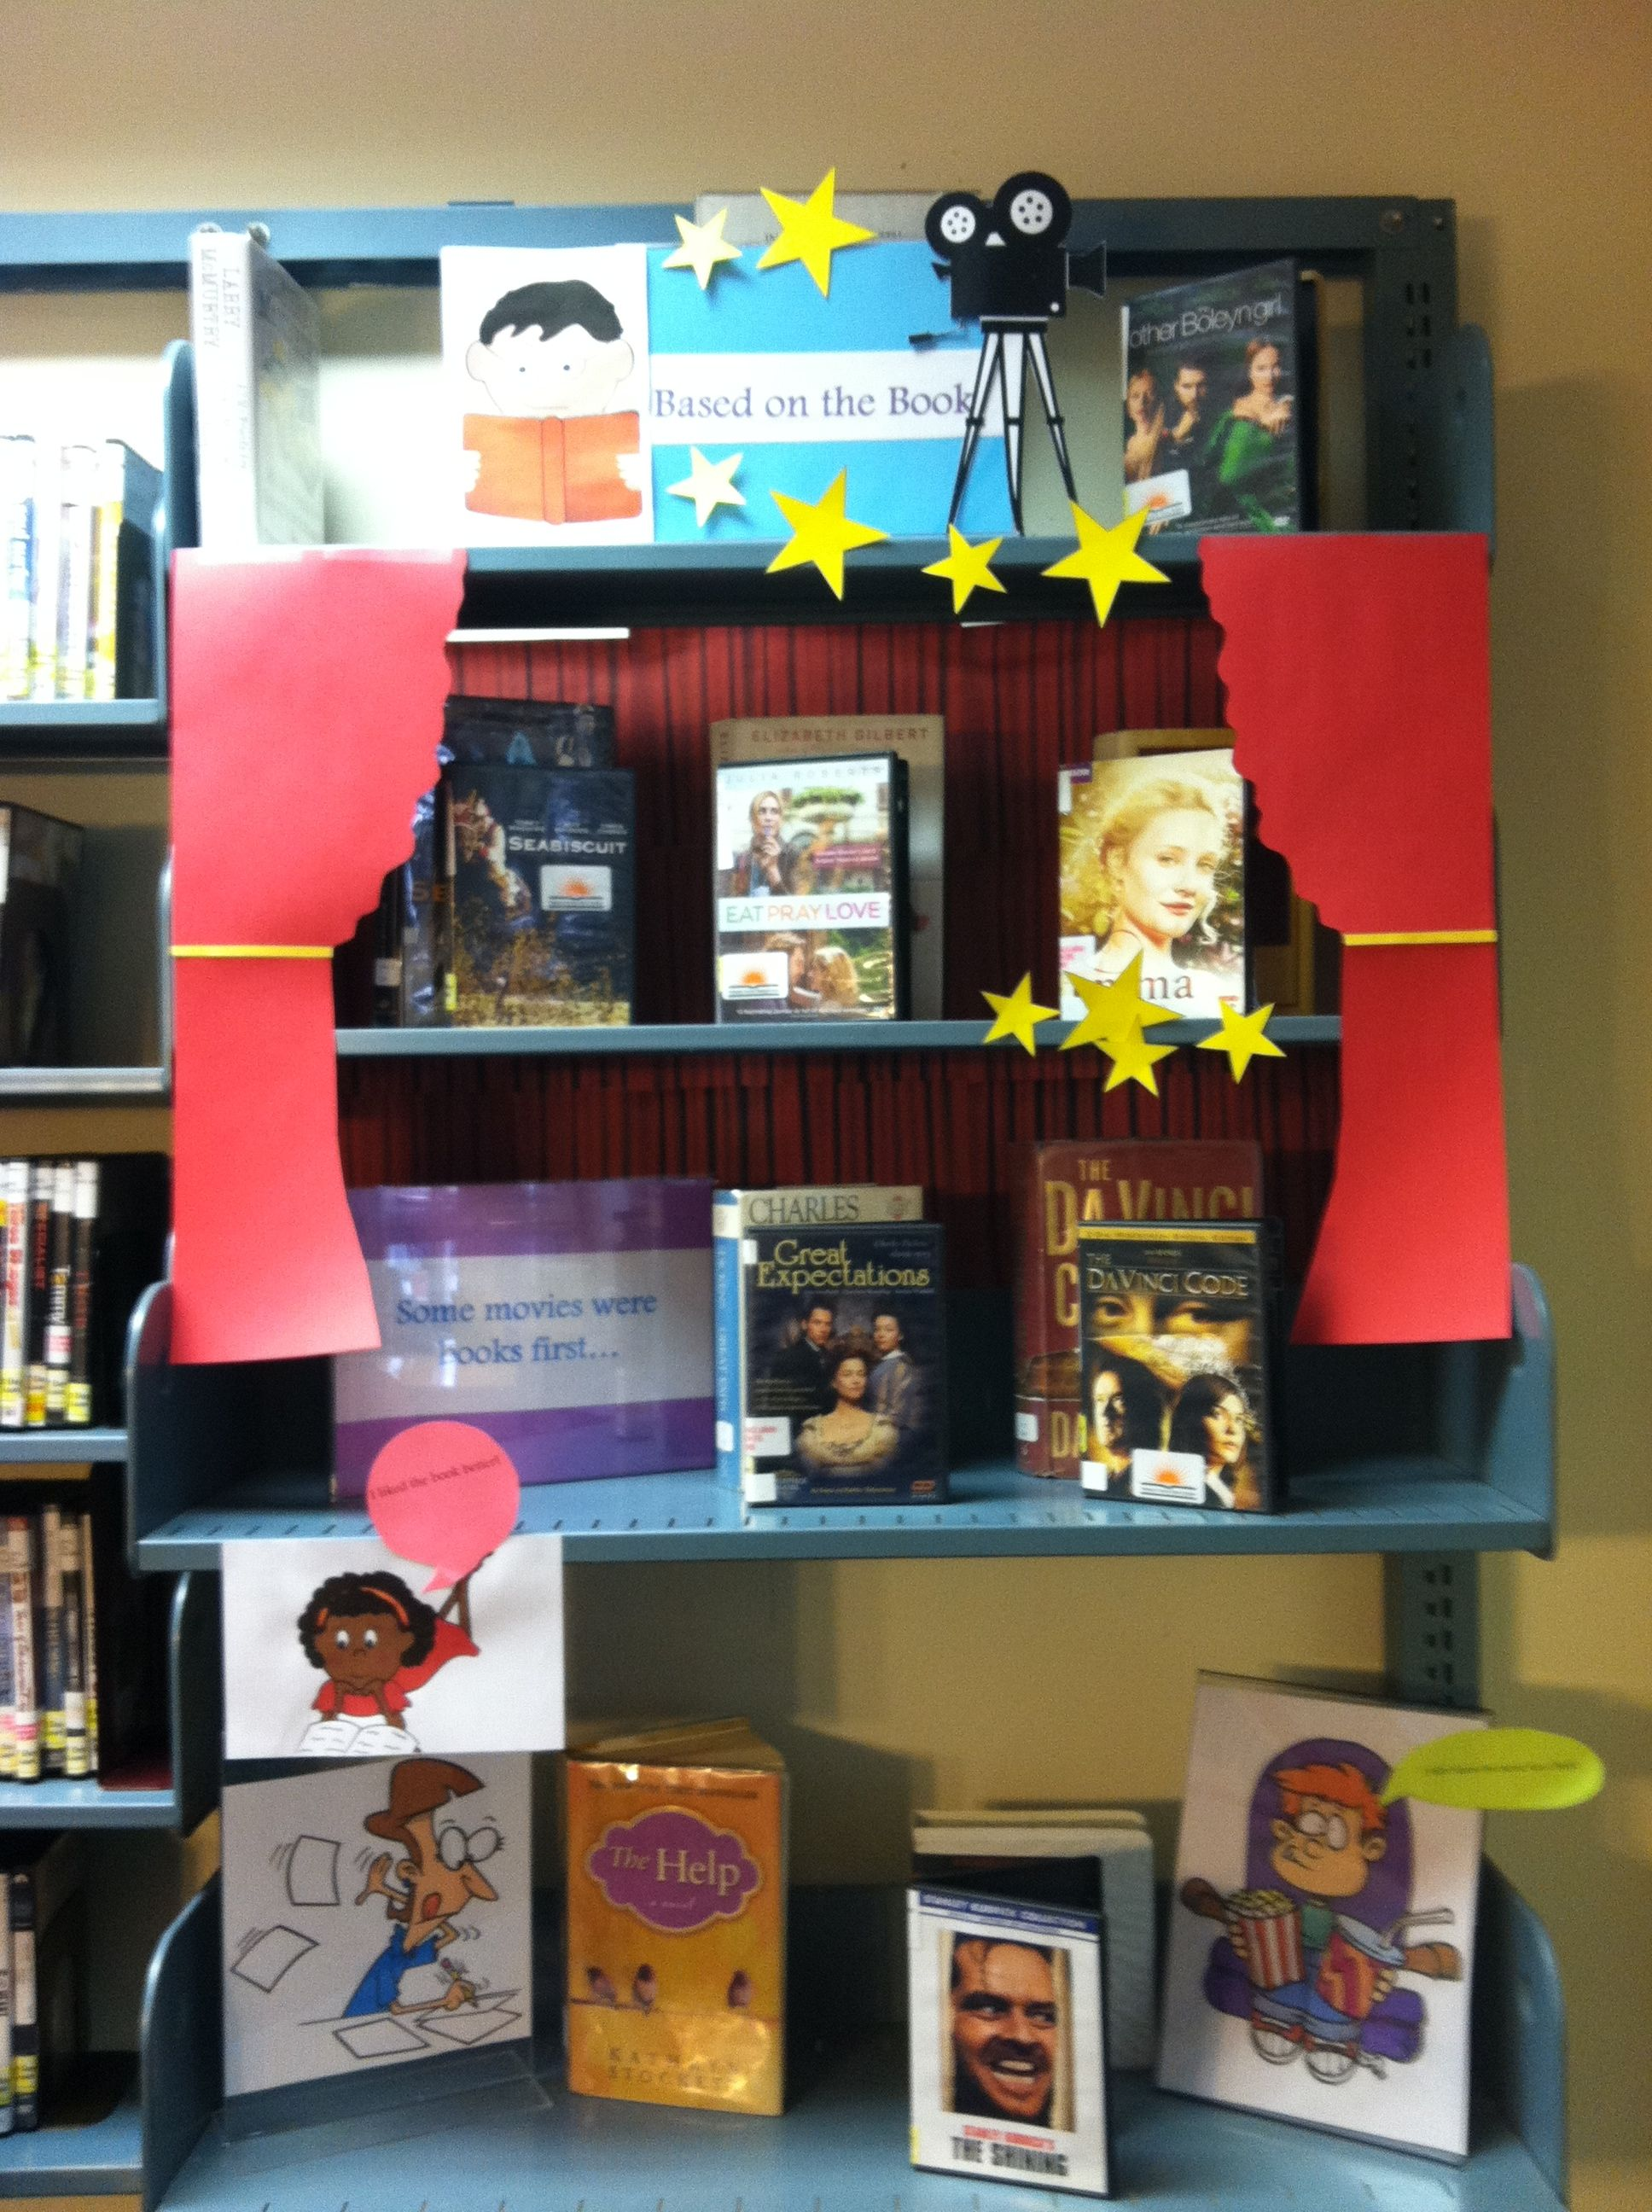 Februarys dvdbook display based on the book is